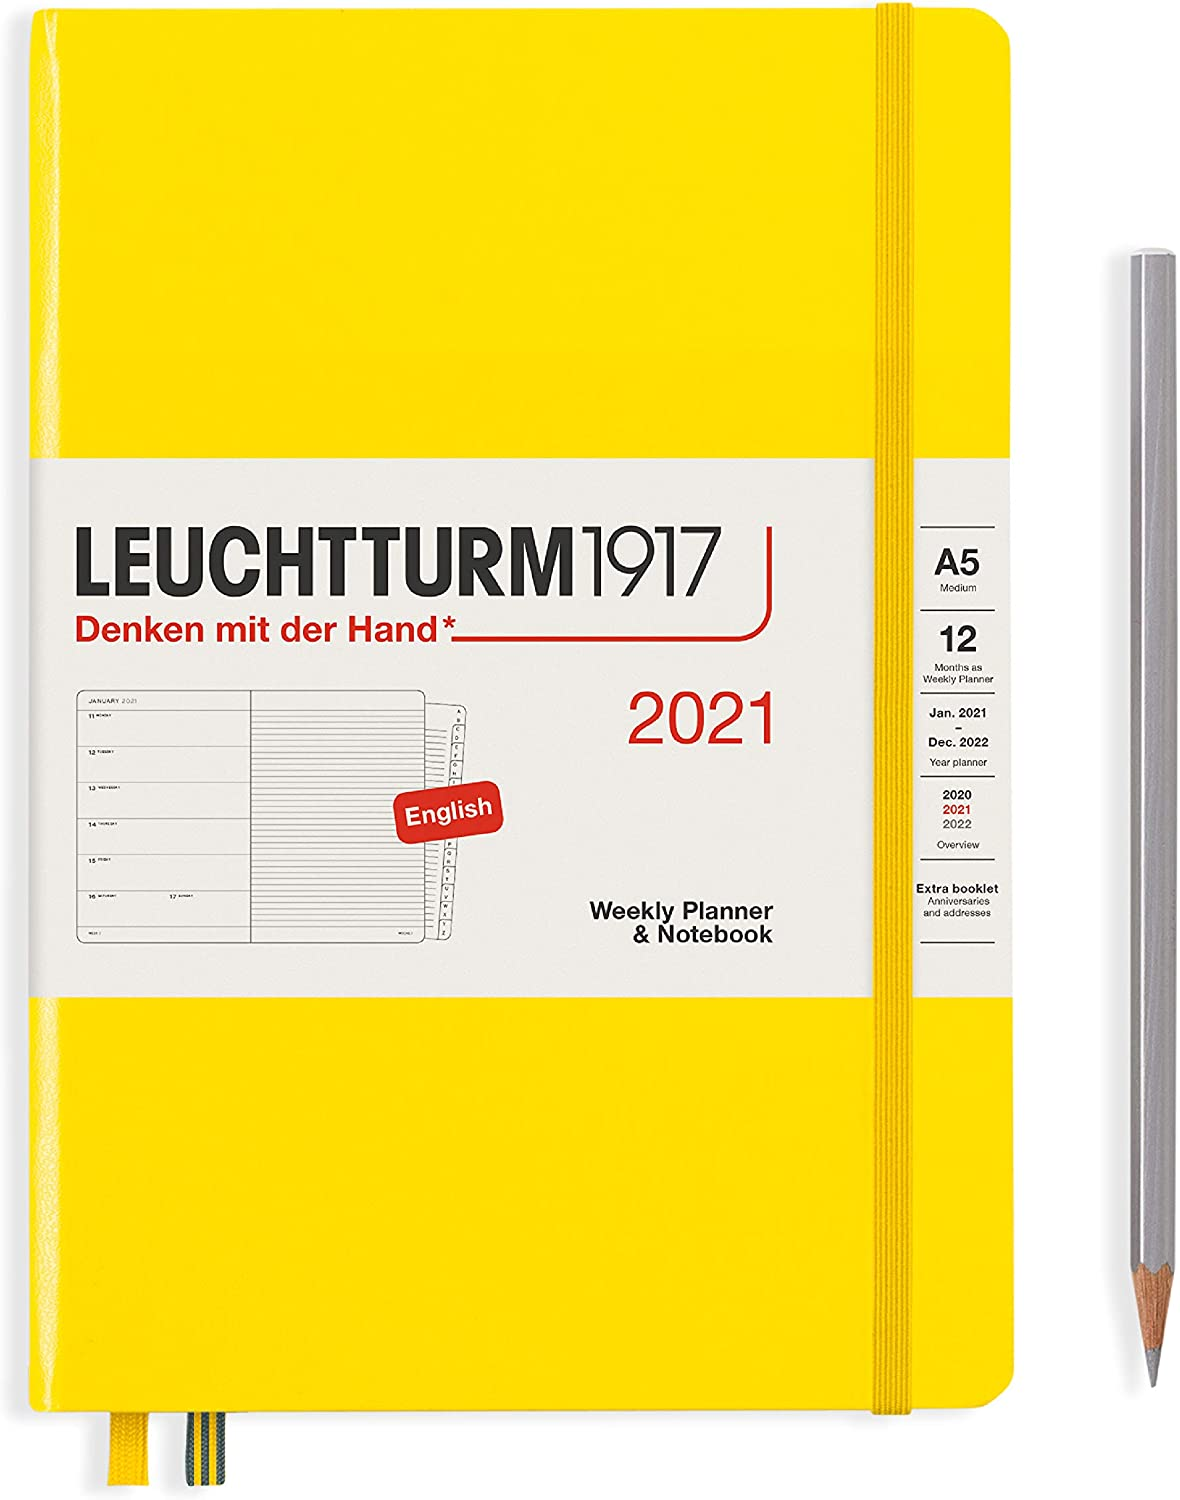 Leuchtturm1917 Weekly Planner & Notebook Medium (A5) 2021 with Extra Booklet, English, Lemon